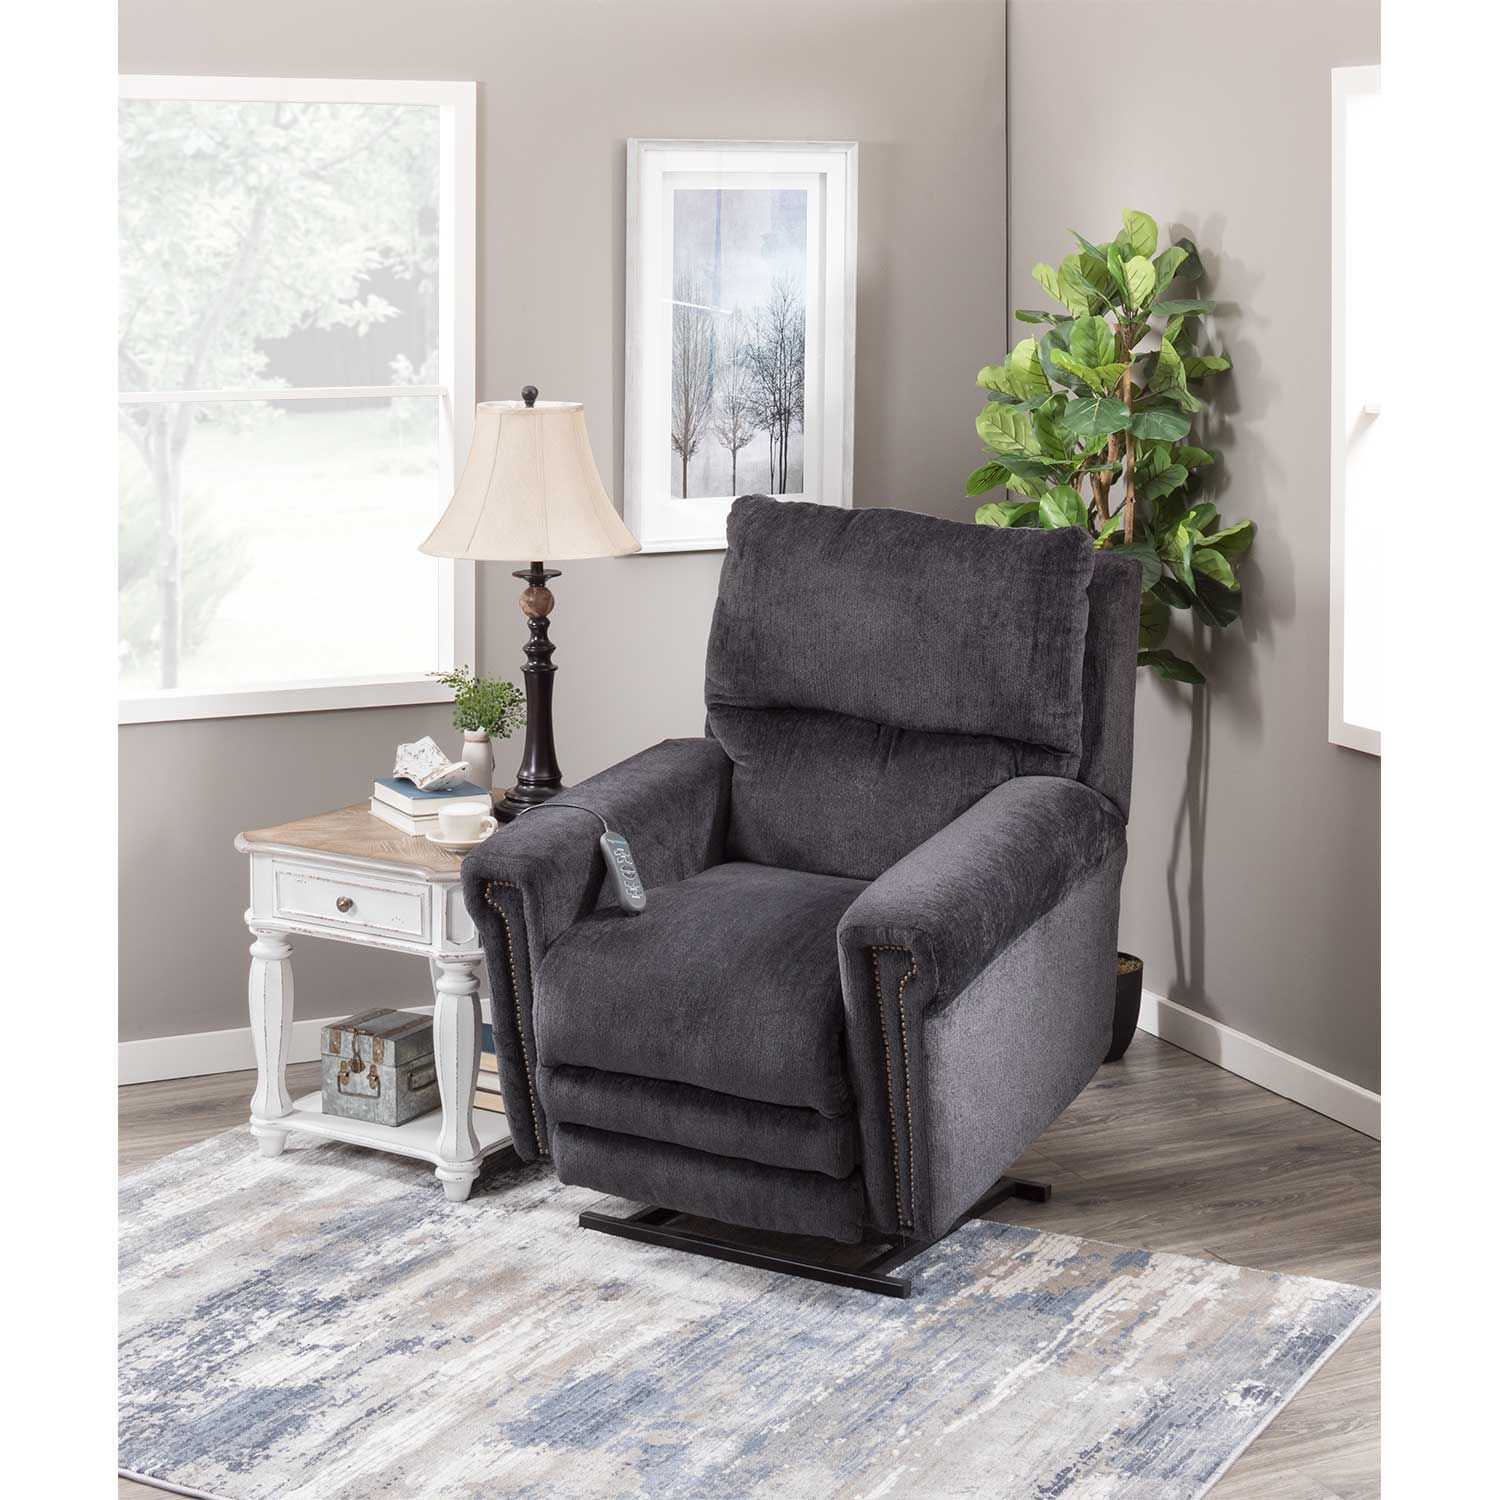 Picture of Warner Power Lift Chair with Adjustable Headrest And Lumbar